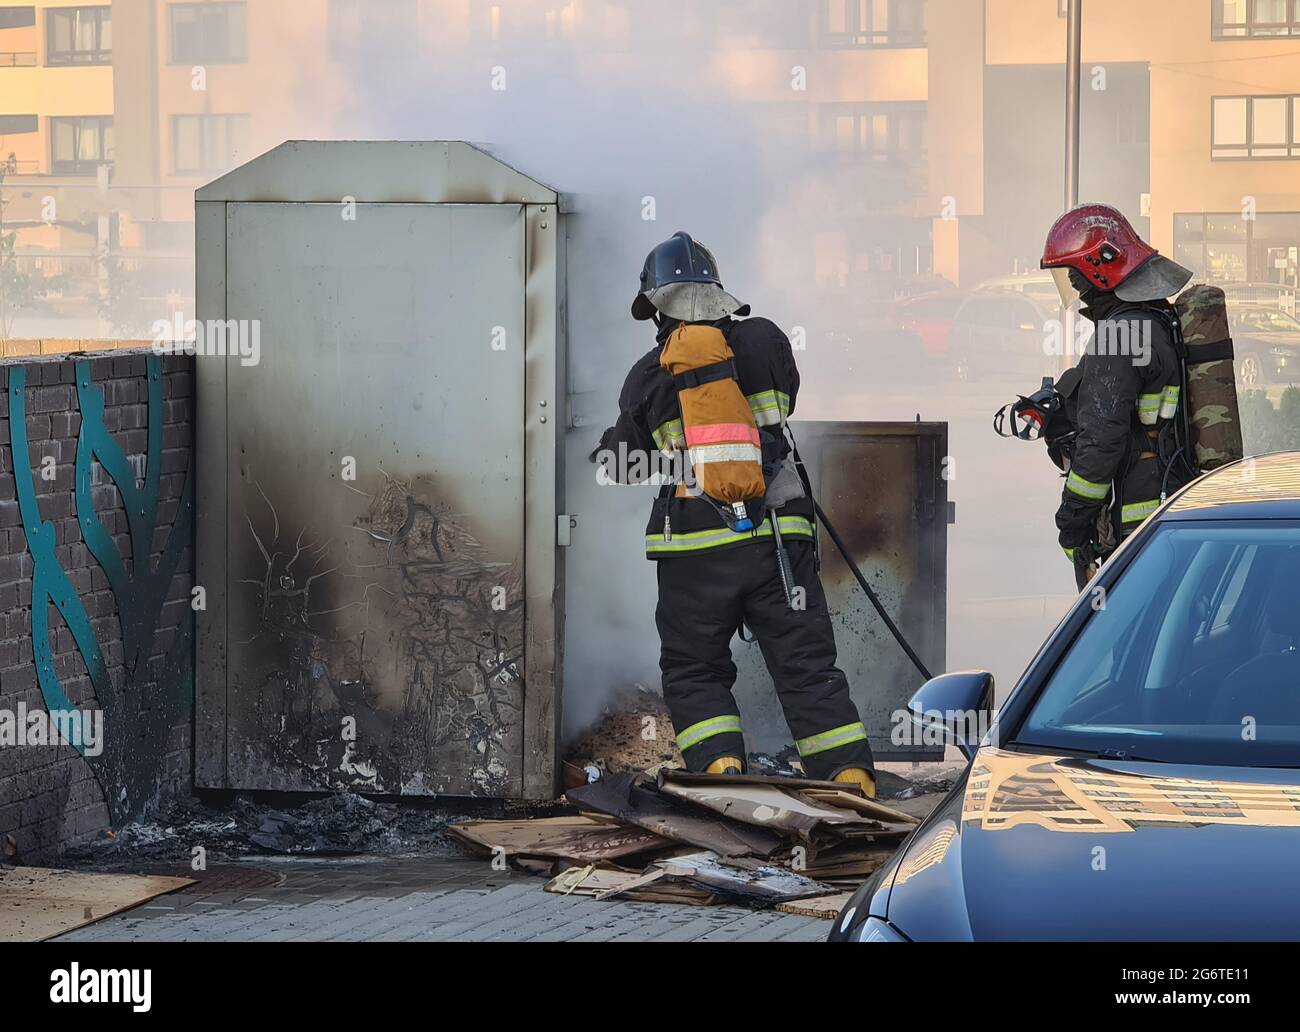 Firefighters extinguishing garbage can fire in car park Stock Photo